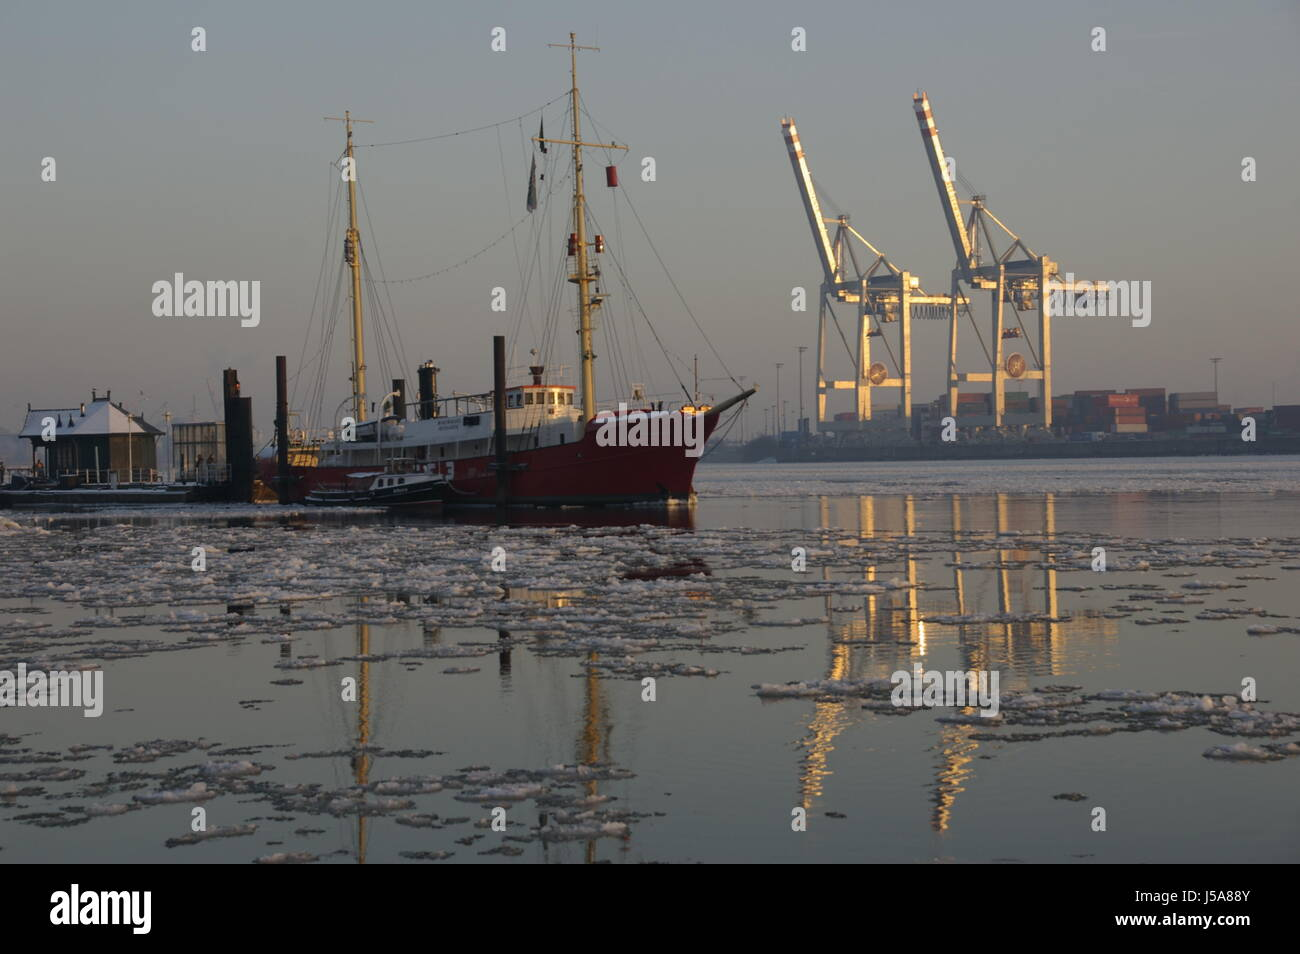 new contrast harbor evening tendency hamburg harbours elbe old feuerwehrschiff Stock Photo